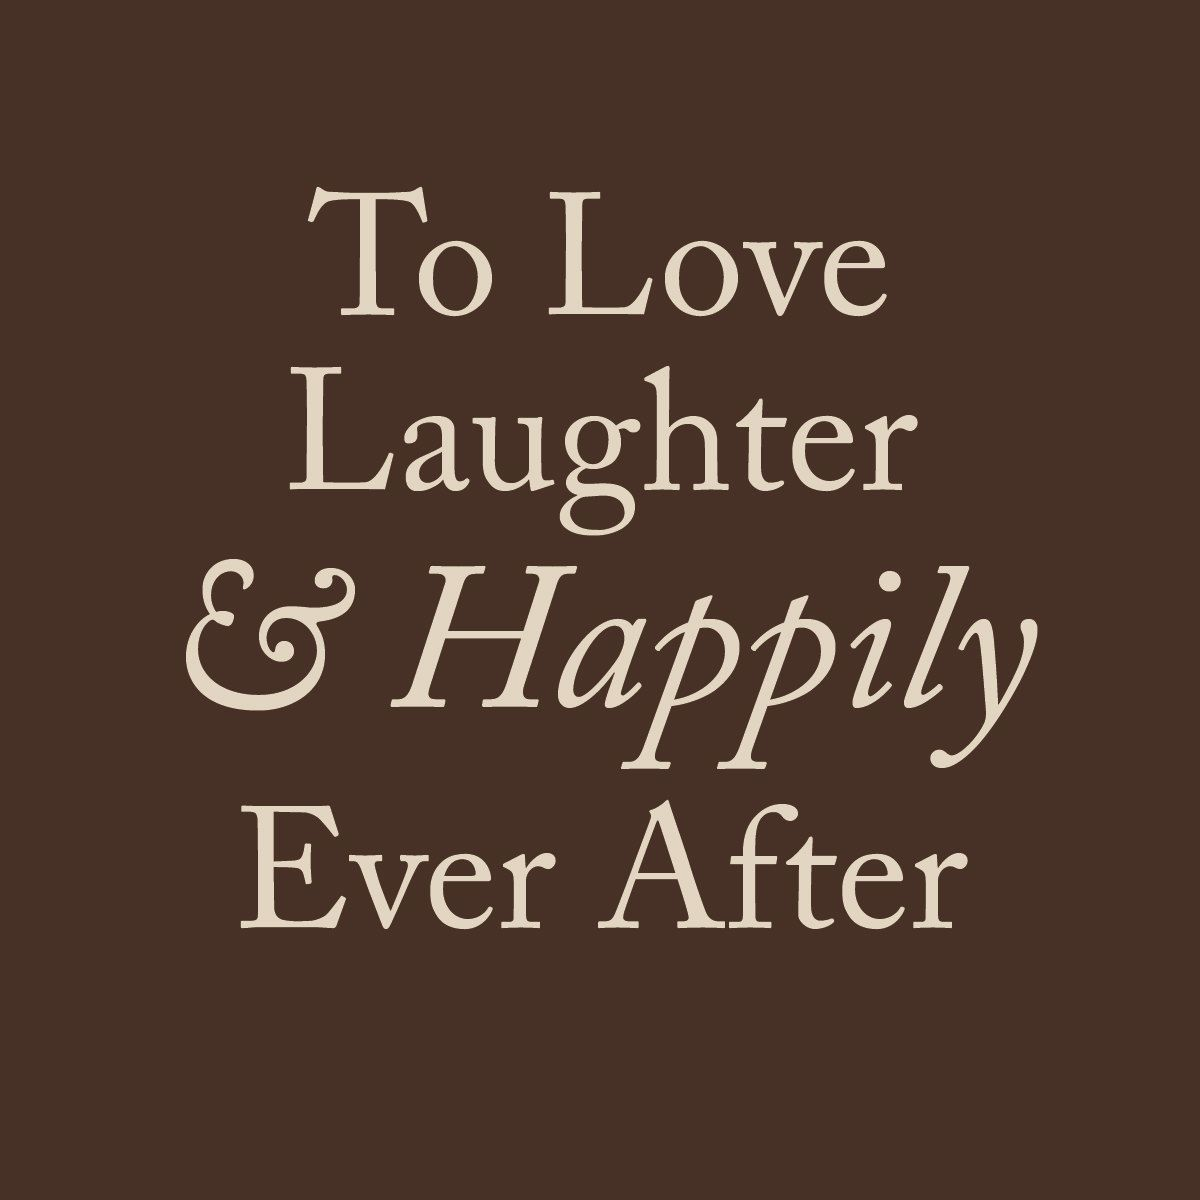 100 Wedding Koozies Love Laughter Hily Ever After 134 00 Via Etsy